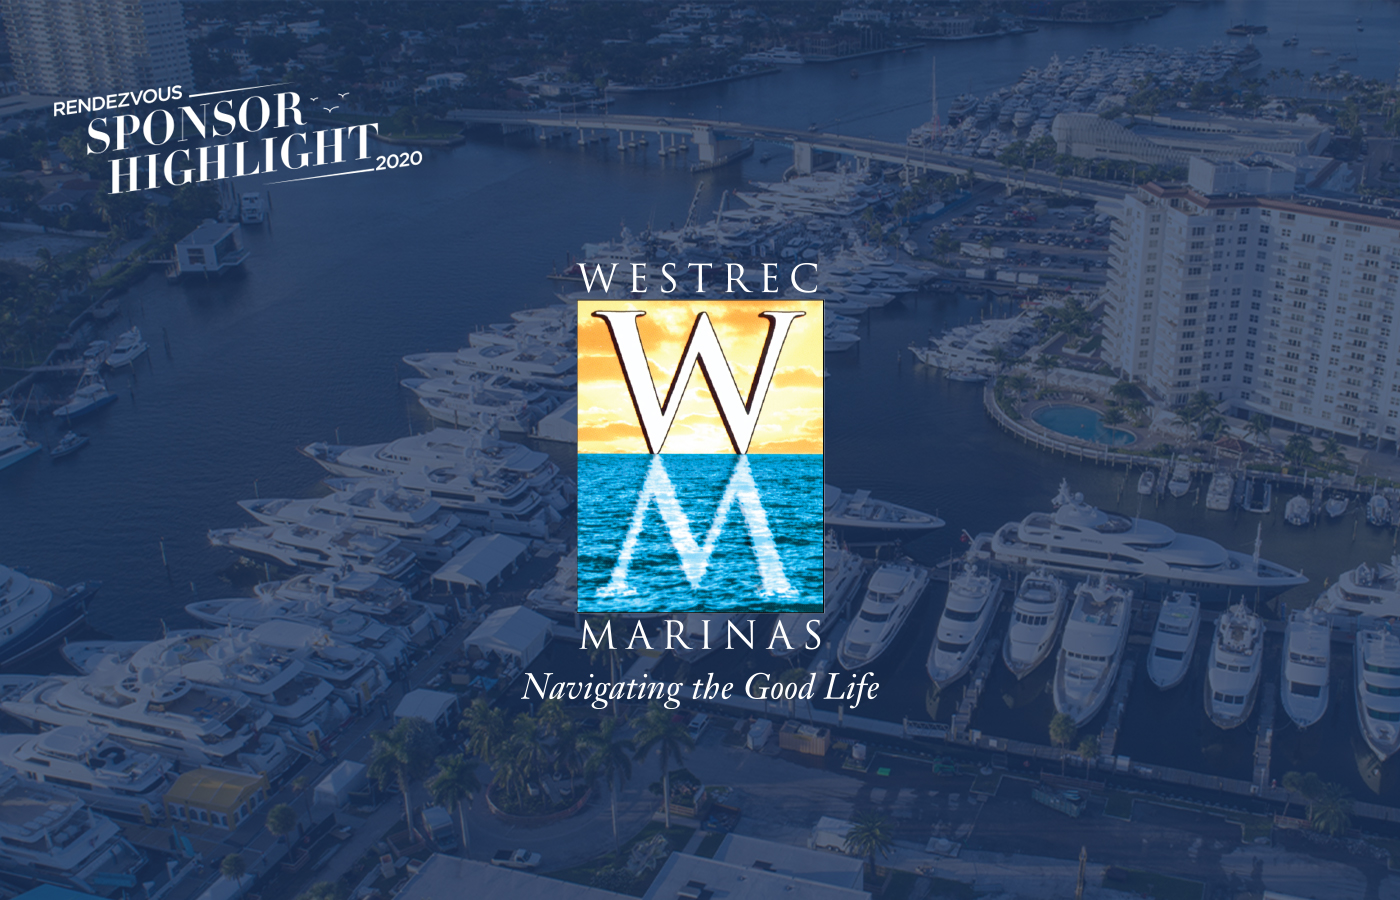 Rendezvous Sponsor Highlight: Westrec Marinas